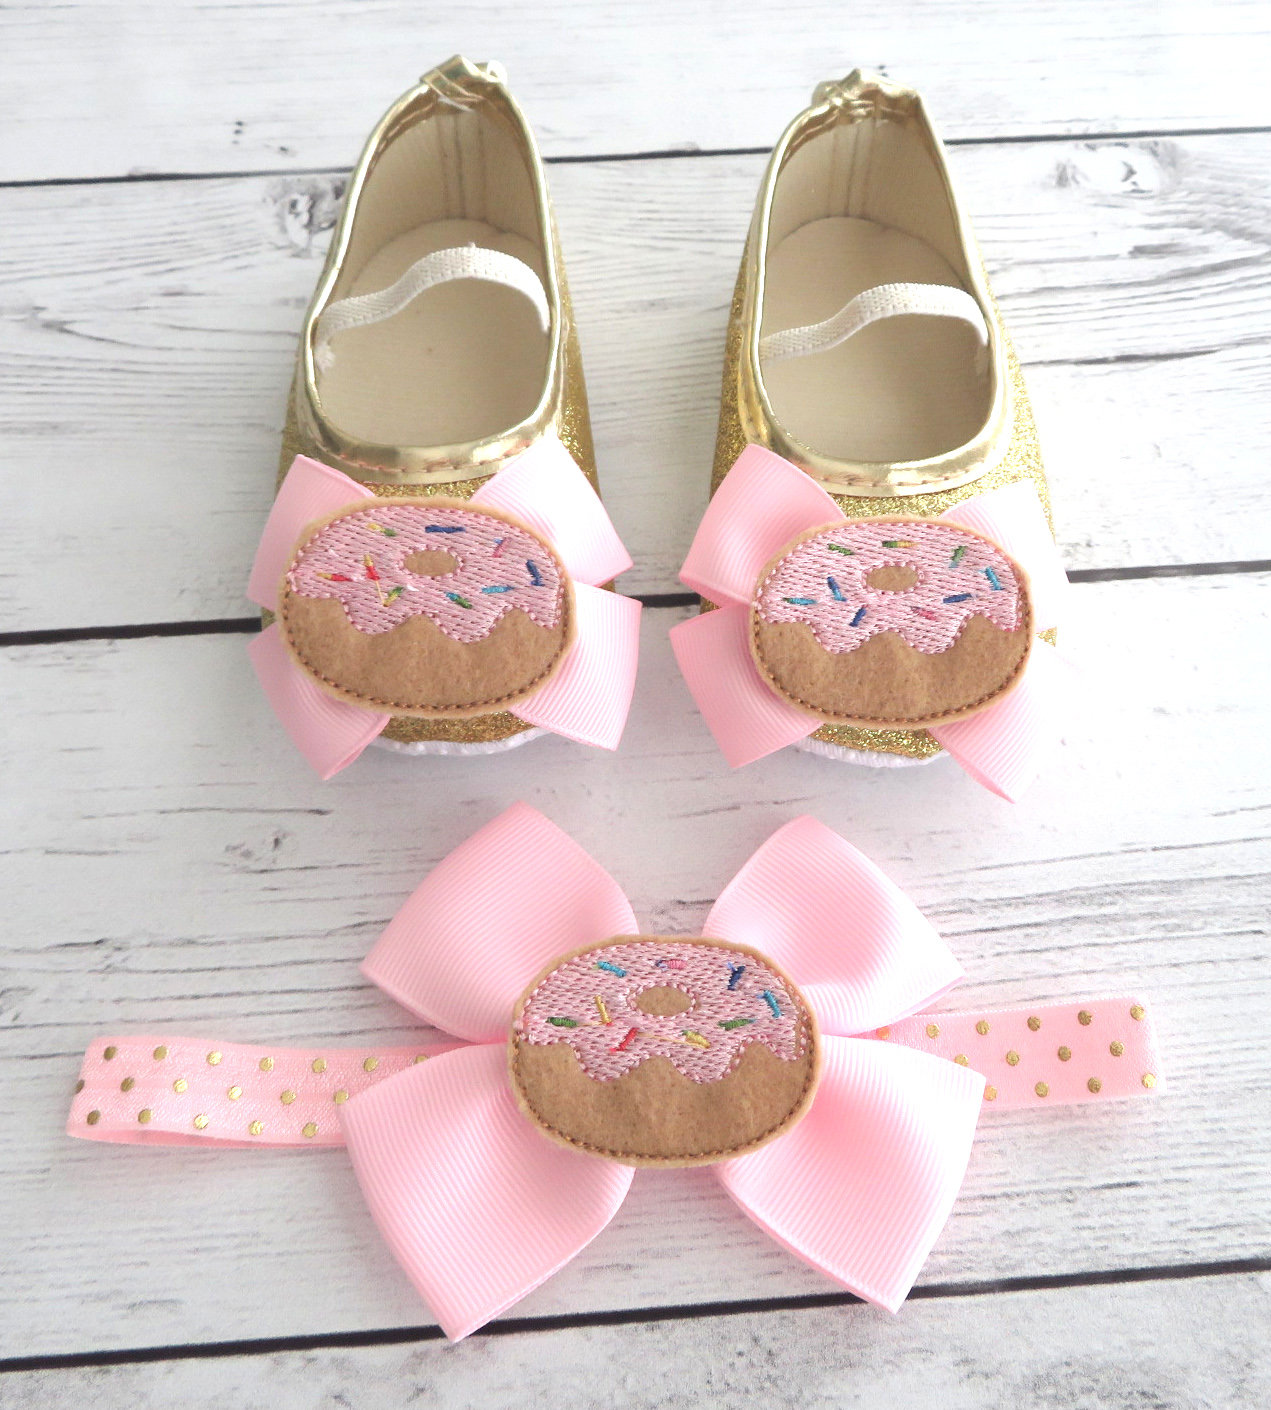 Donut First Birthday Shoes & Headband for Girl in light pink and gold- donut grow up, doughnut 1st bday girl, sweet one birthday girl